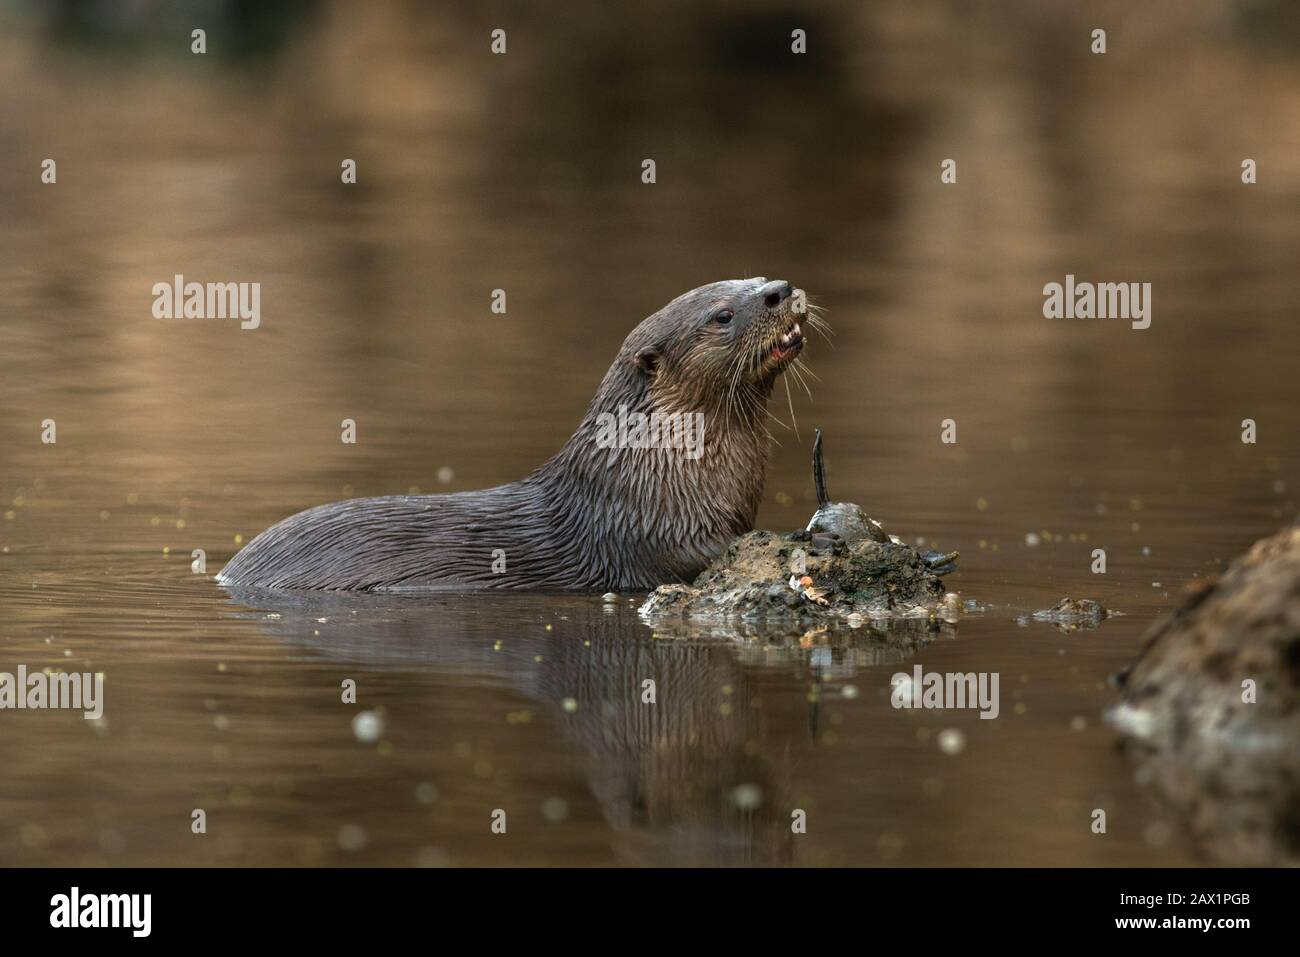 A Neotropical River Otter (Lontra longicaudis) from South Pantanal, Brazil Stock Photo